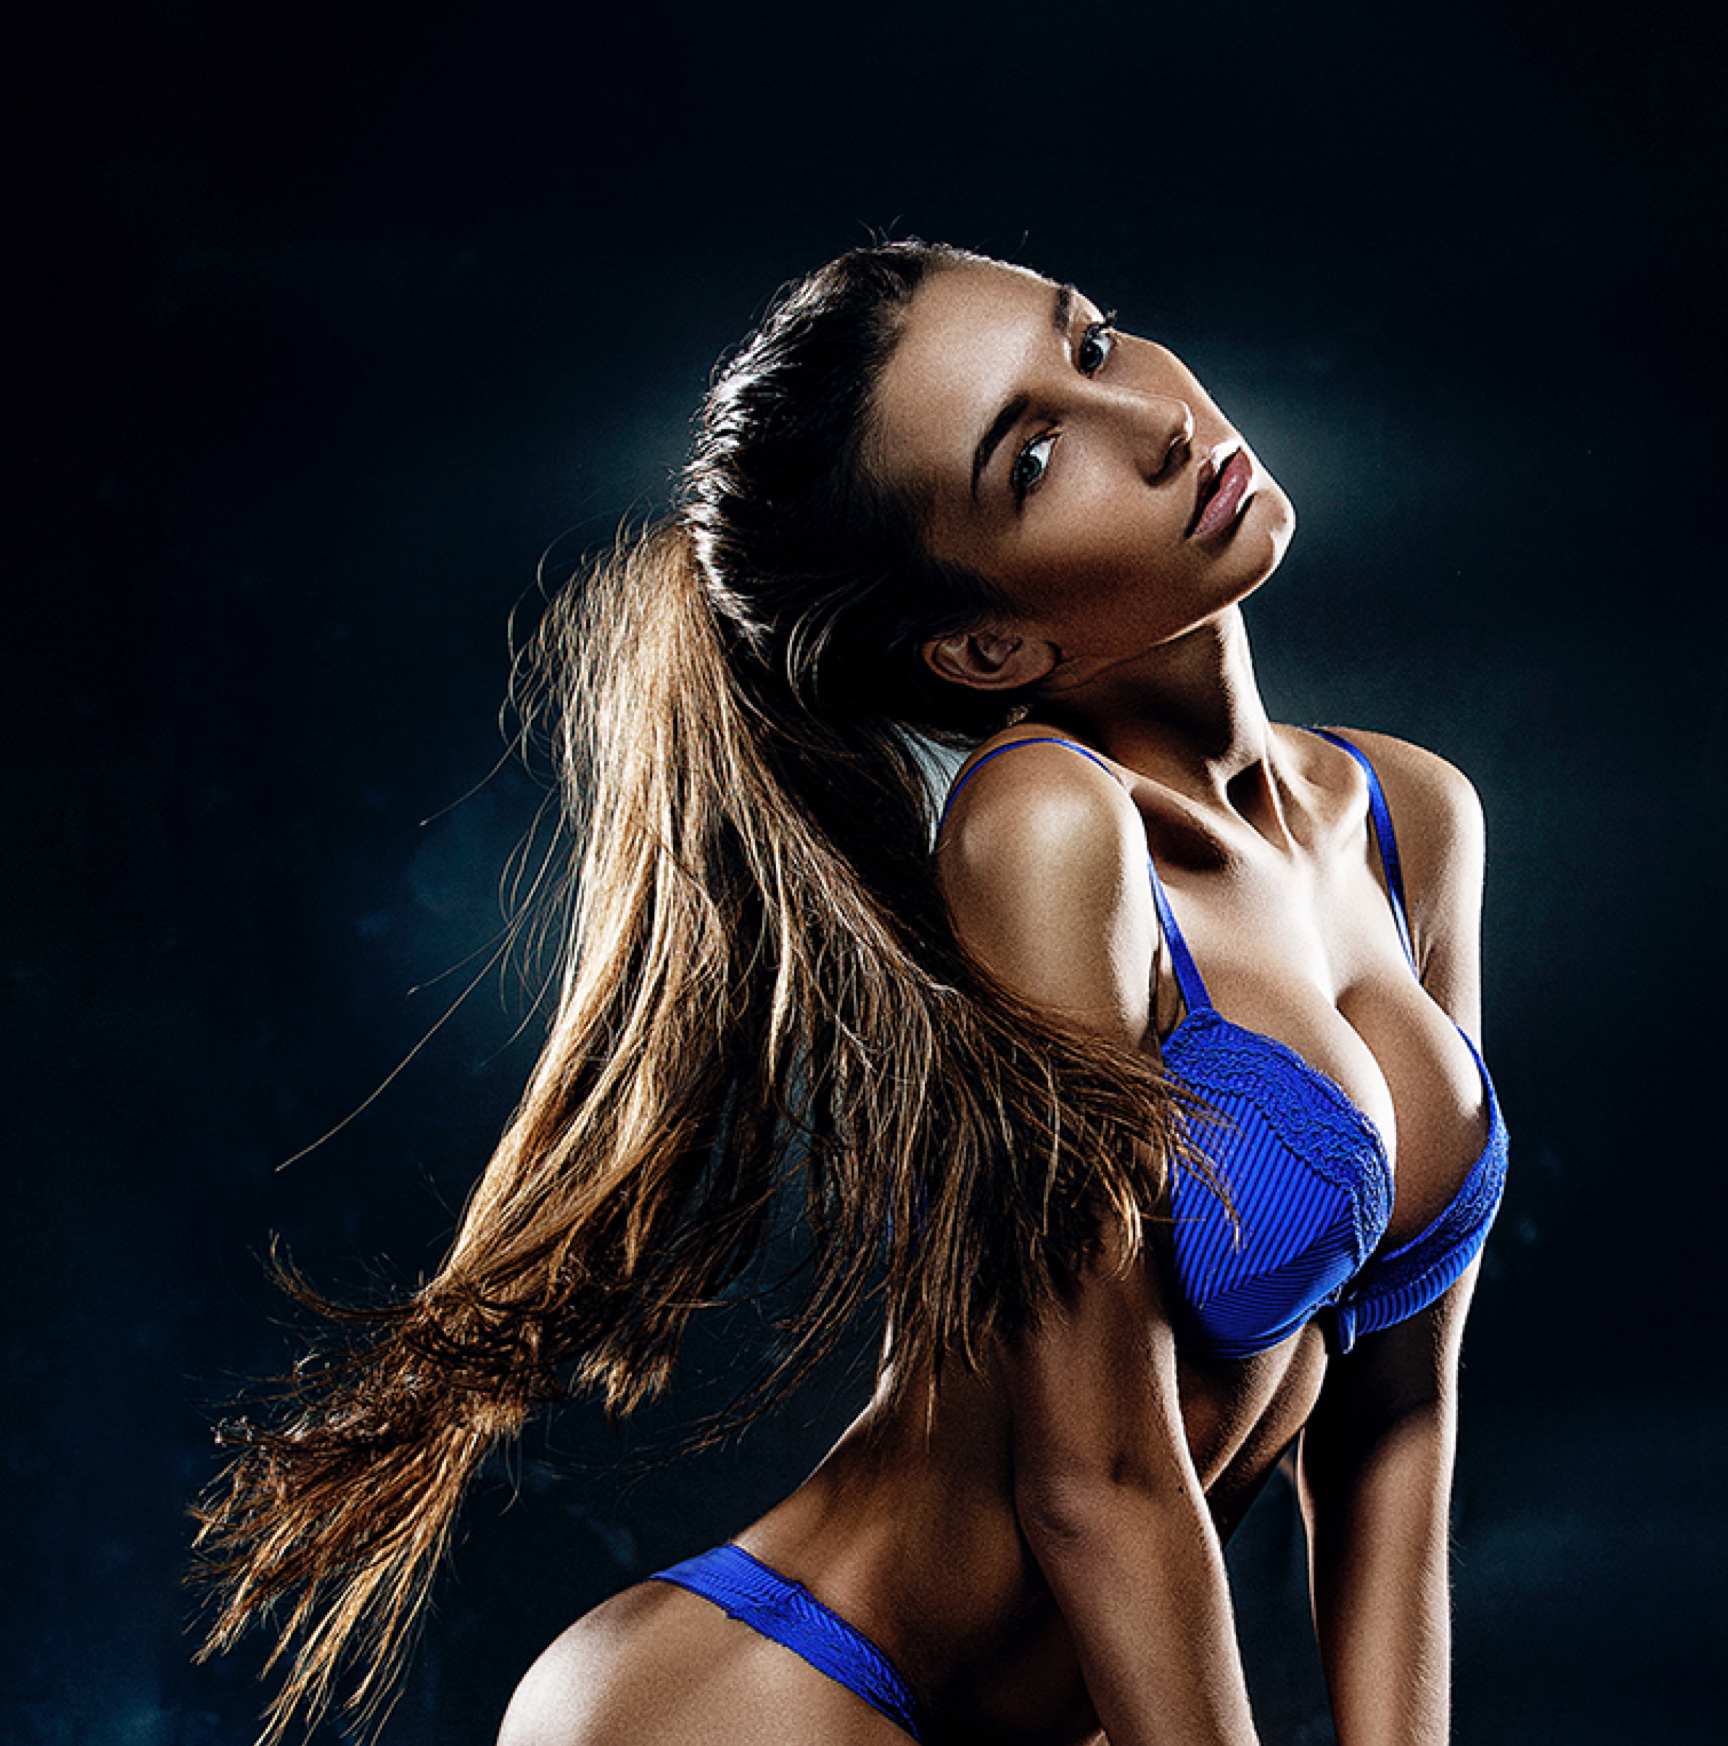 Young brunette model with long hair up in a pony tail and large breasts in a cobalt blue bra